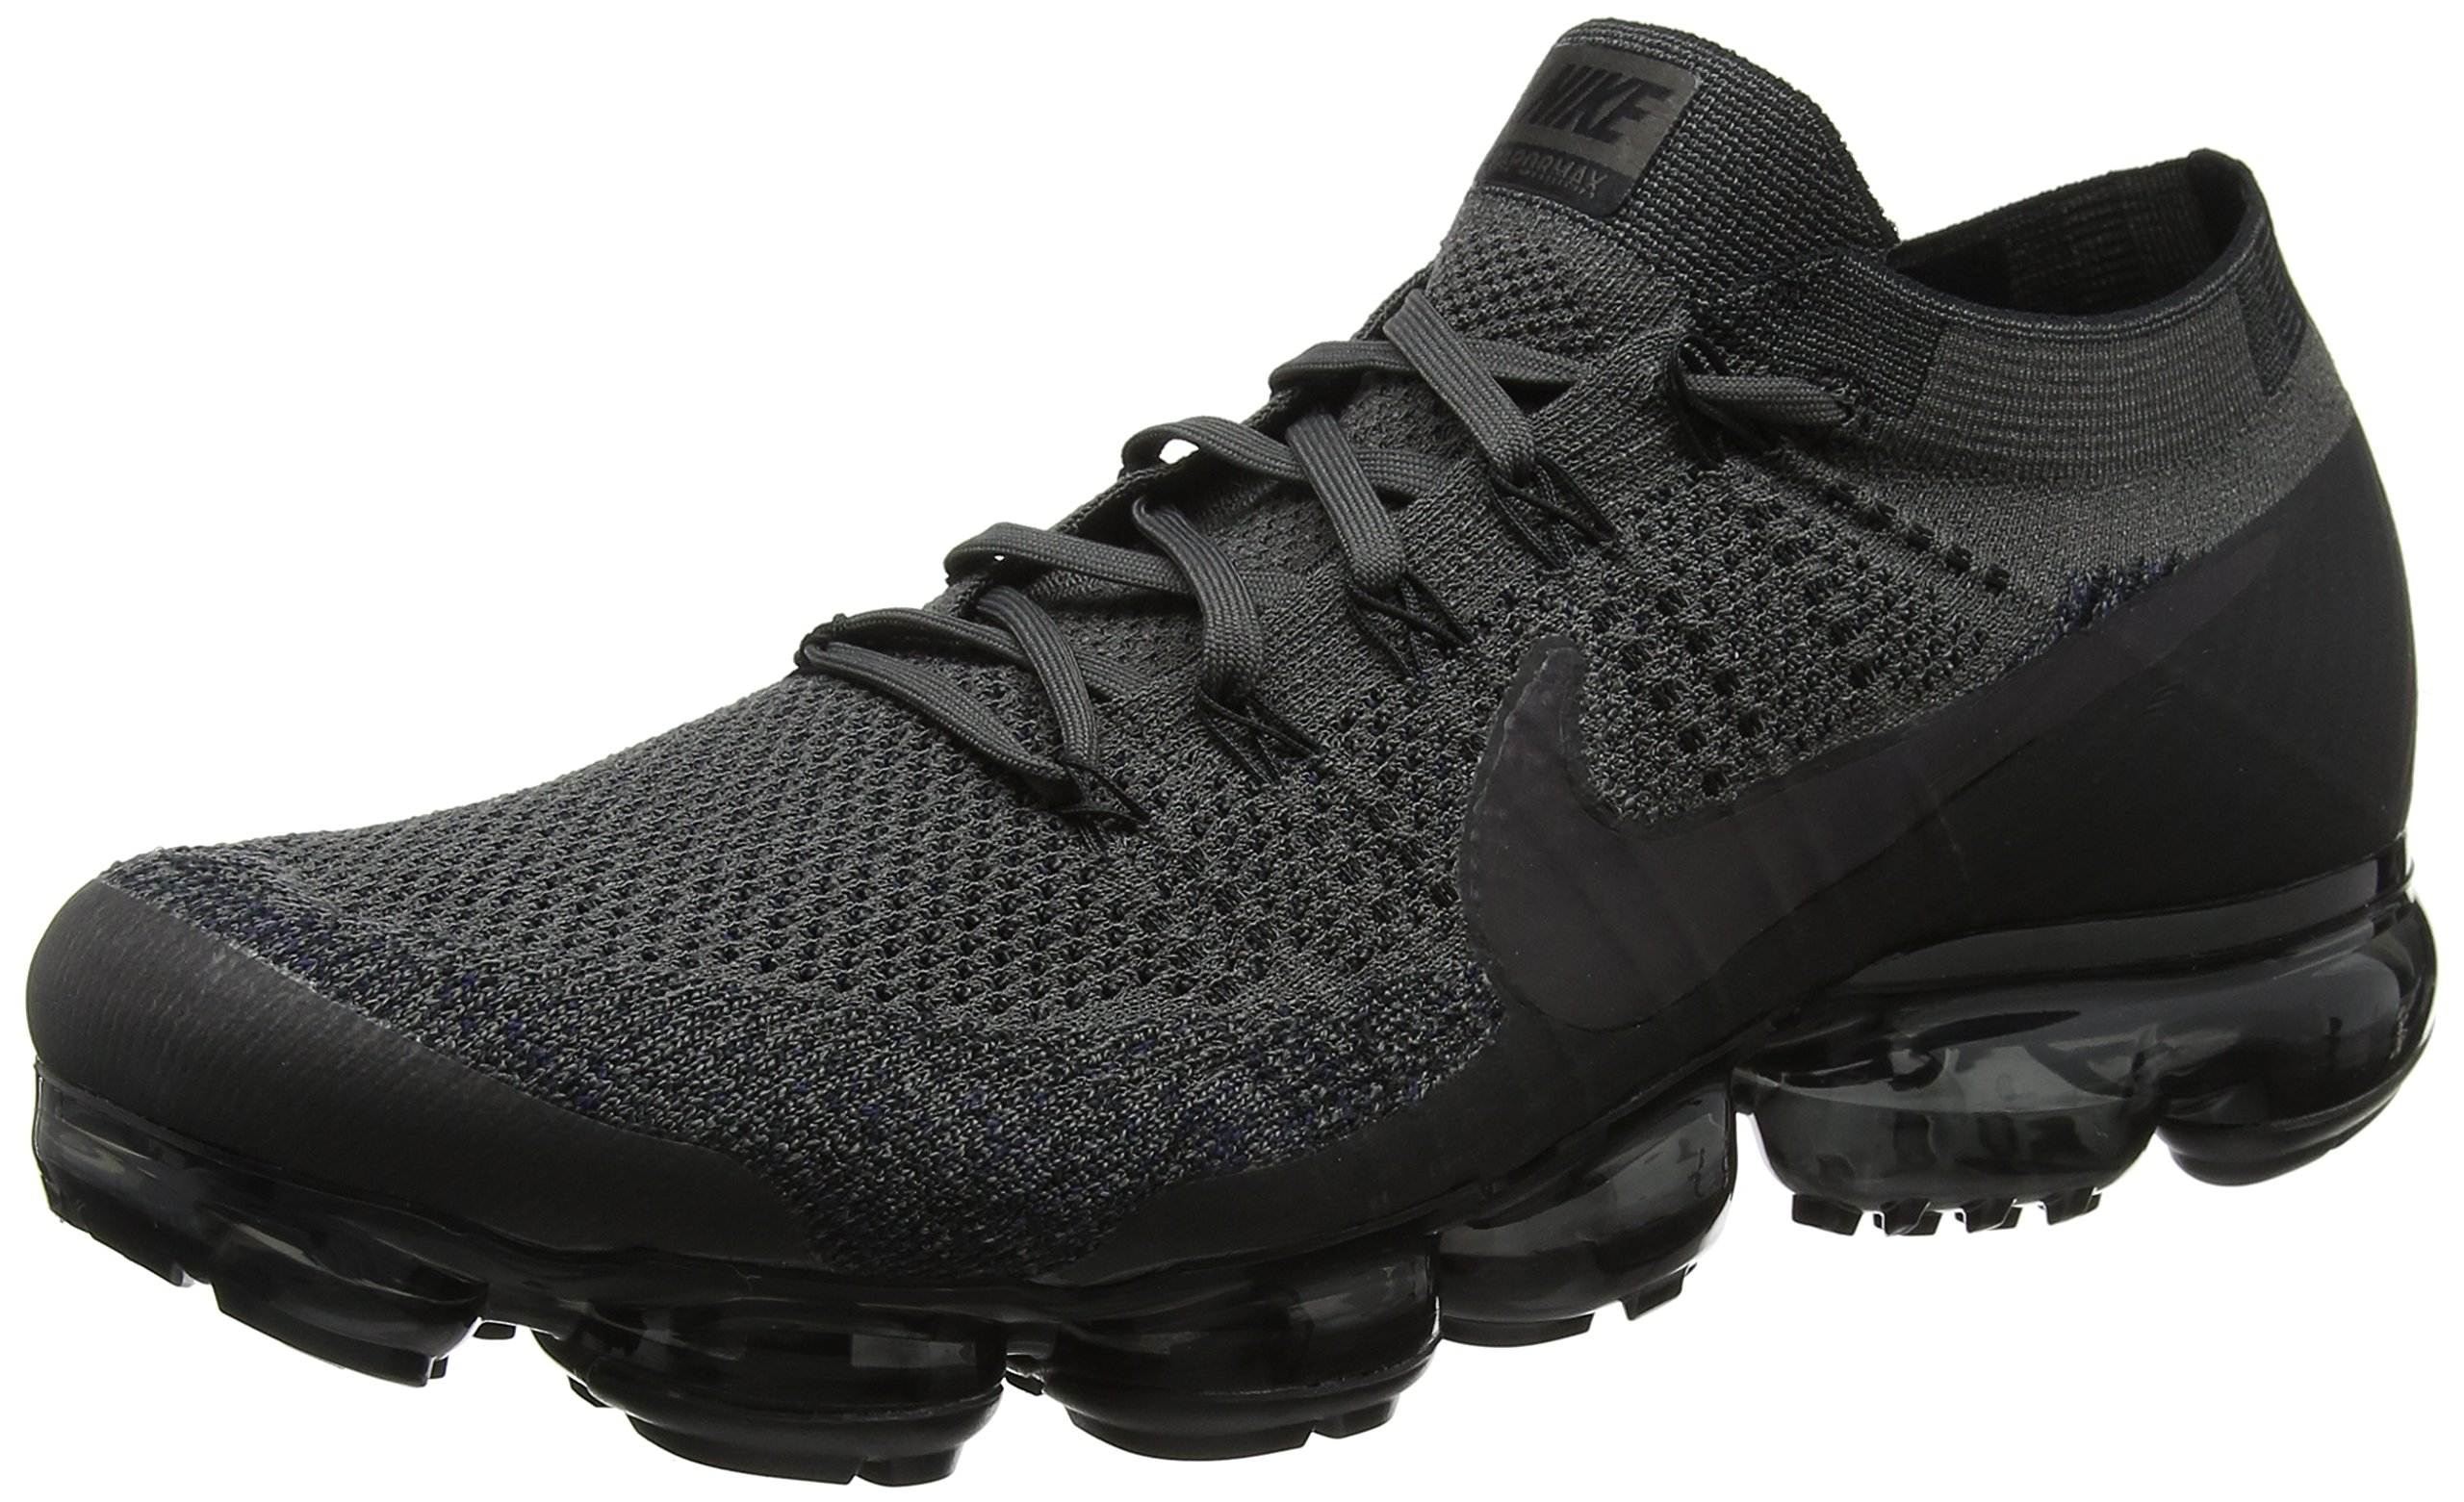 buy online e65eb 6f39a Galleon - Nike Men's AIR Vapormax Flyknit Running Shoe ...